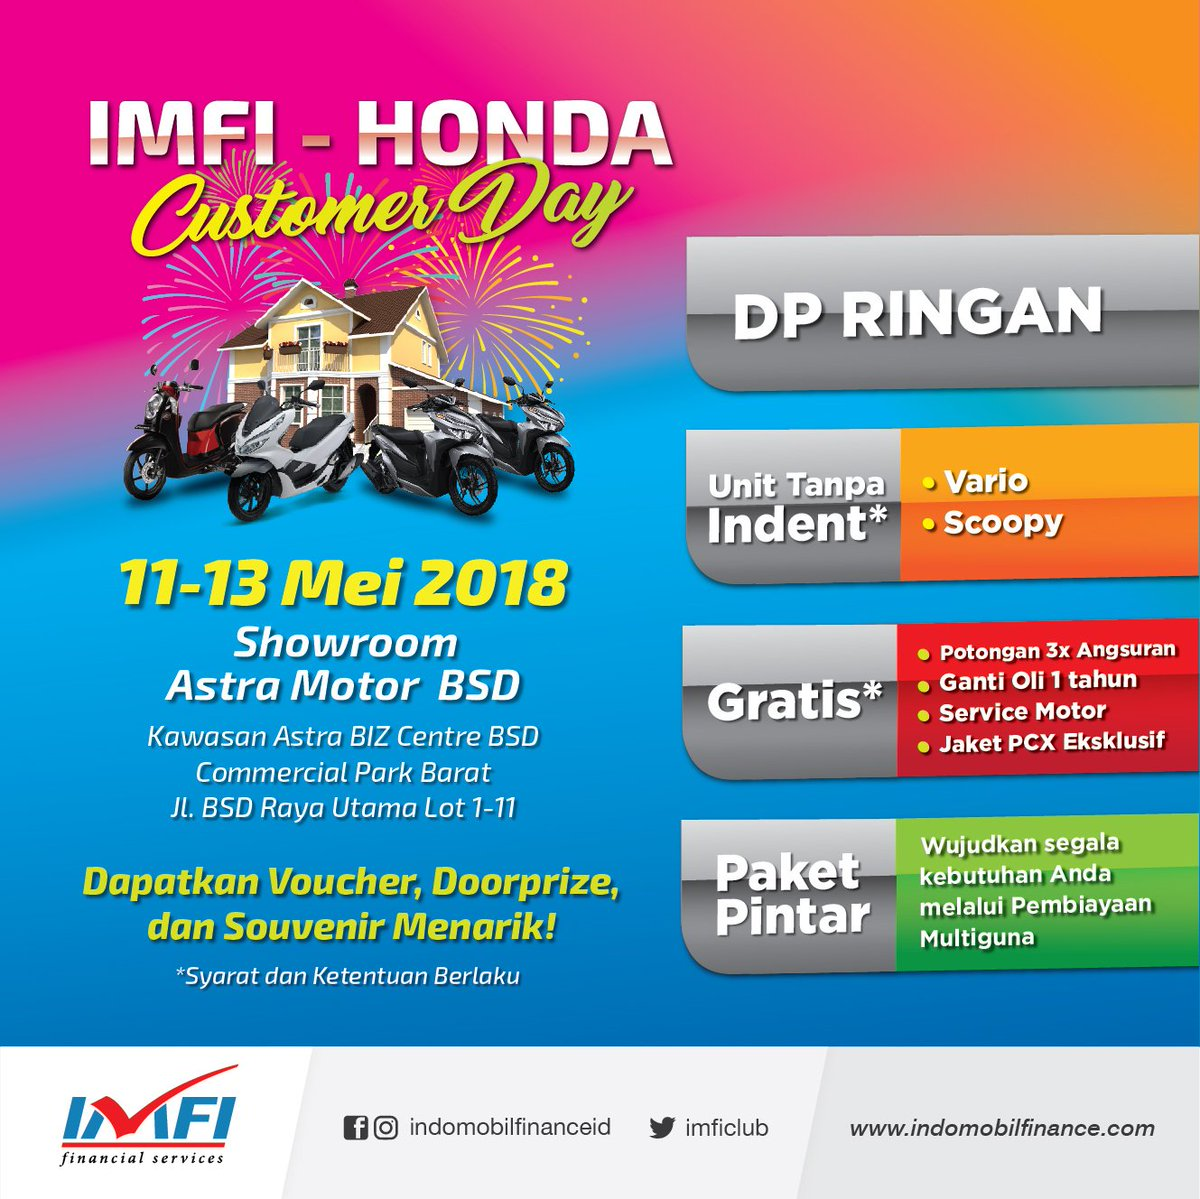 Indomobil Finance On Twitter Promo Kredit Motor Honda Di Imfi